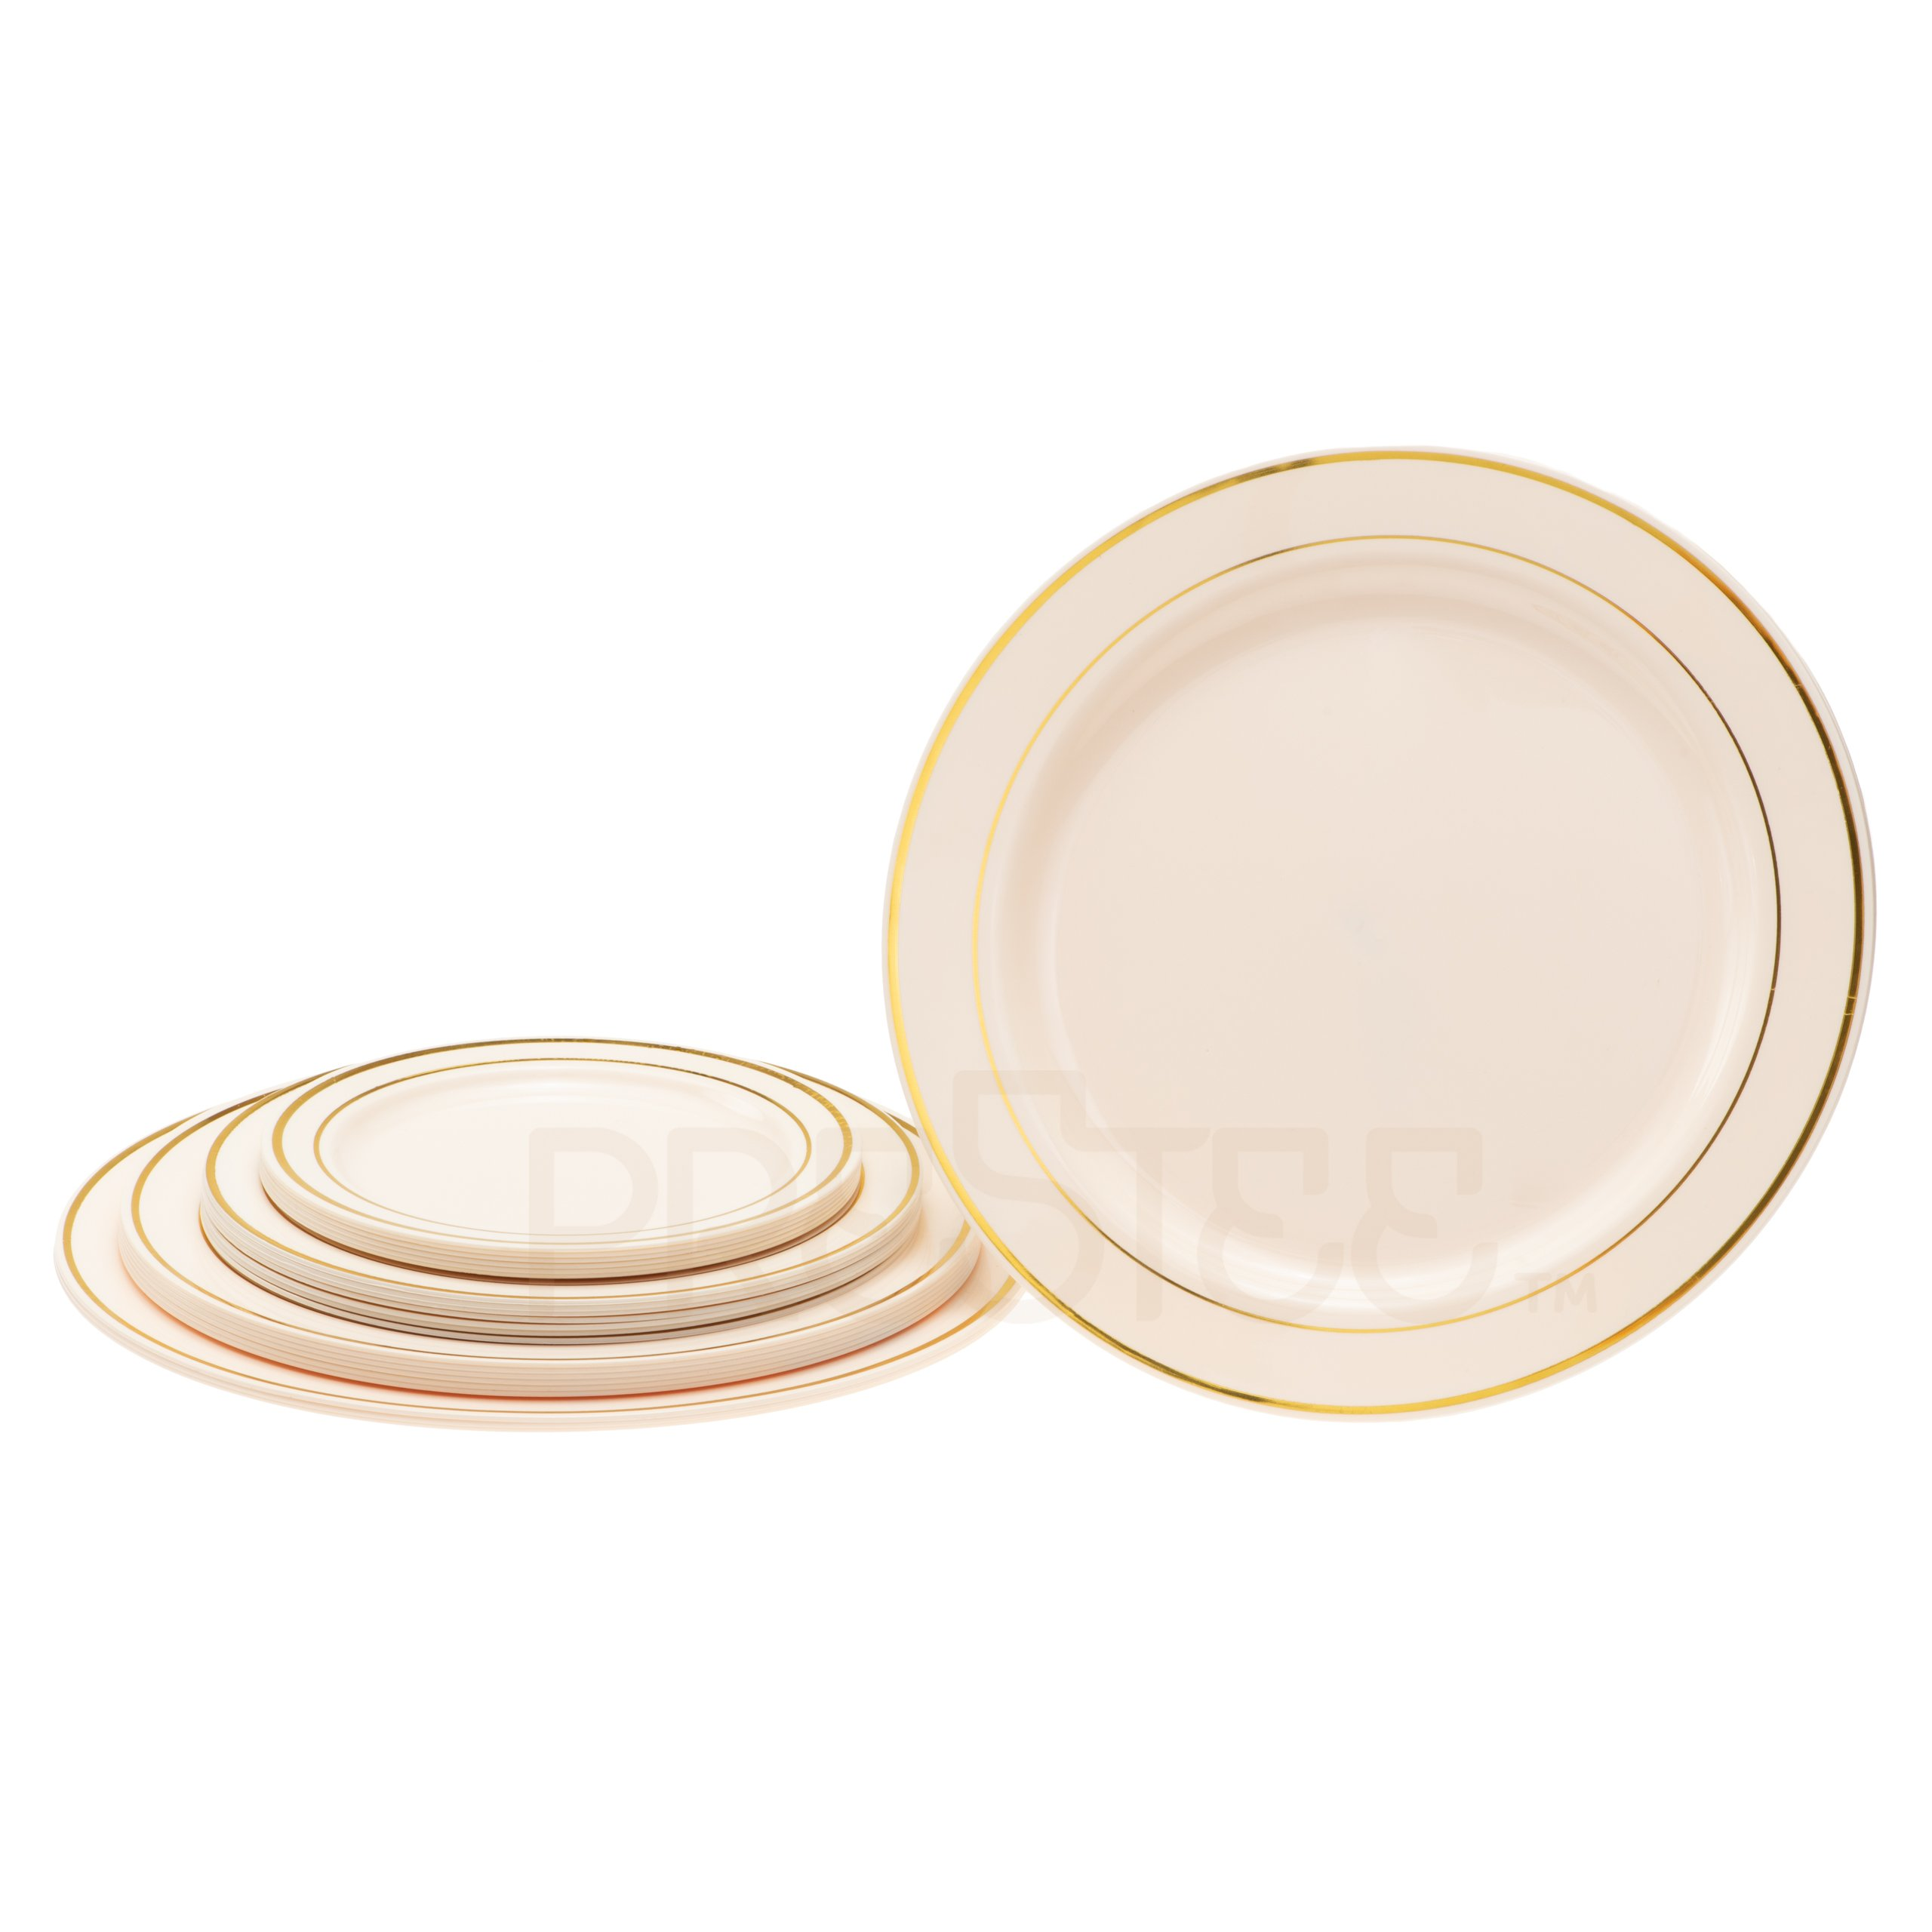 DELUXE PLASTIC PARTY DISPOSABLE PLATES | 10.25 Inch Hard Wedding Dinner Plates | Ivory with Gold Rim, 20 Pack | Elegant & Fancy Heavy Duty Party Supplies Plates for all Holidays & Occasions